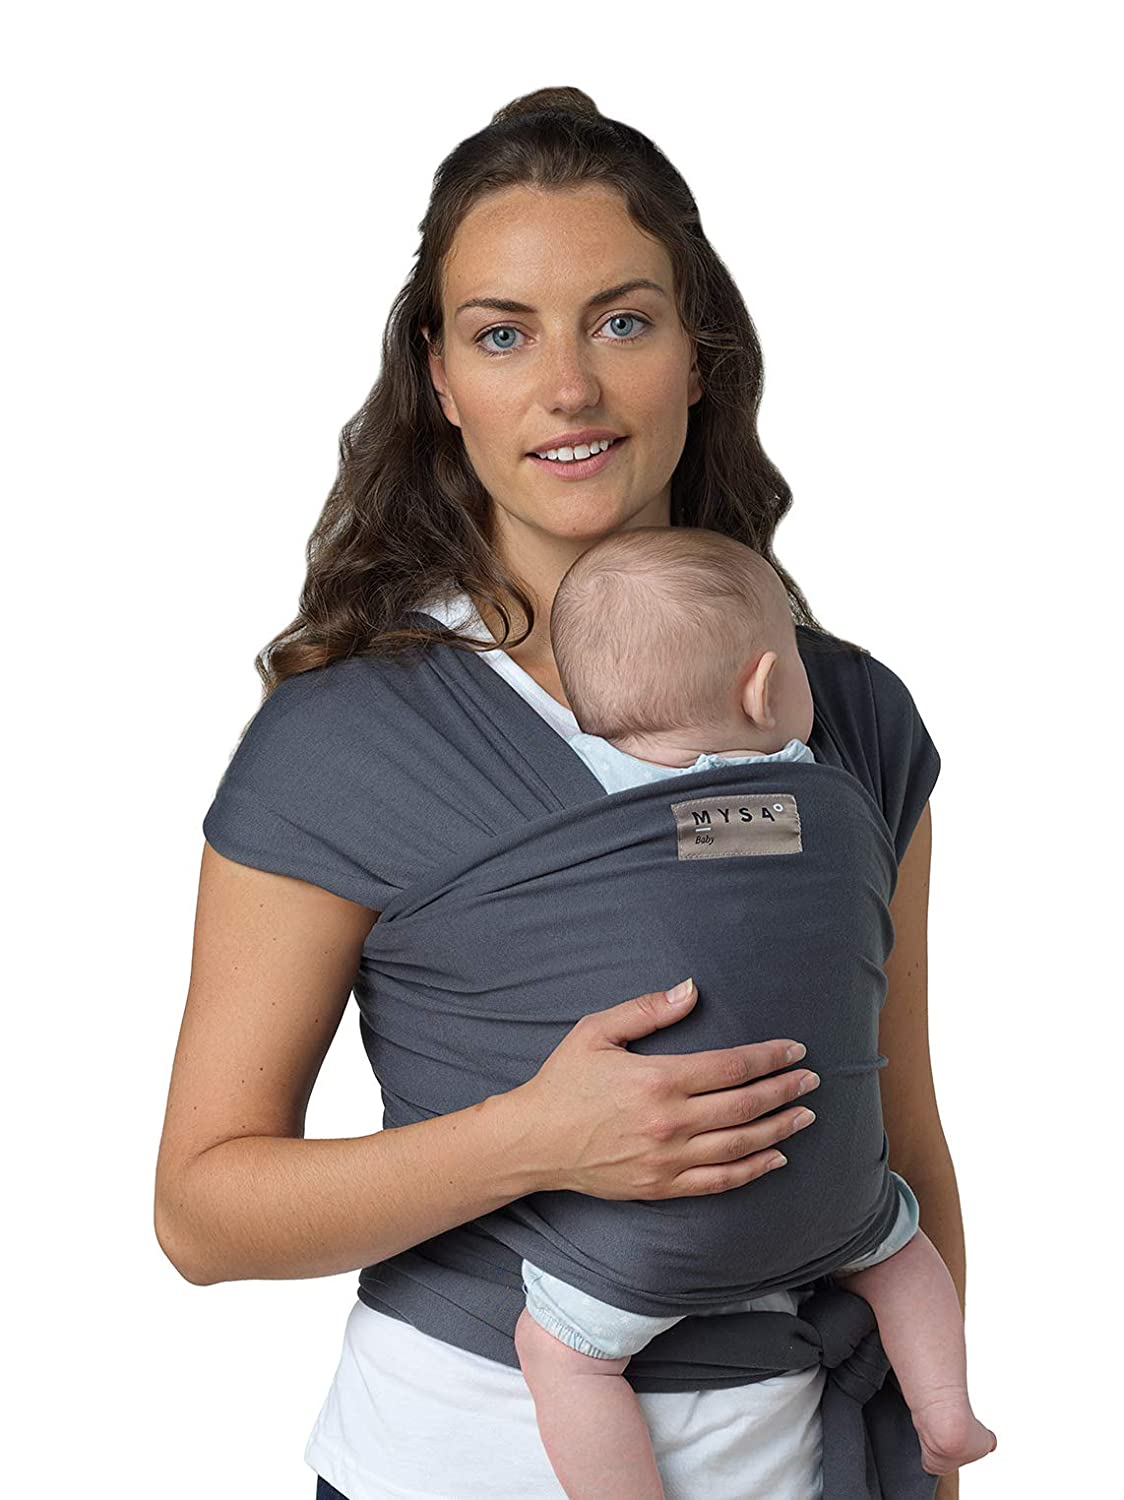 MYSA | Premium Baby Carrier | Neutral Cotton Wrap | Suitable for Newborns, Infants & Toddlers | Adjustable Breastfeeding Cover | Soothing Lightweight Hold | Ideal Nursing Wrap | Grey MYSA design